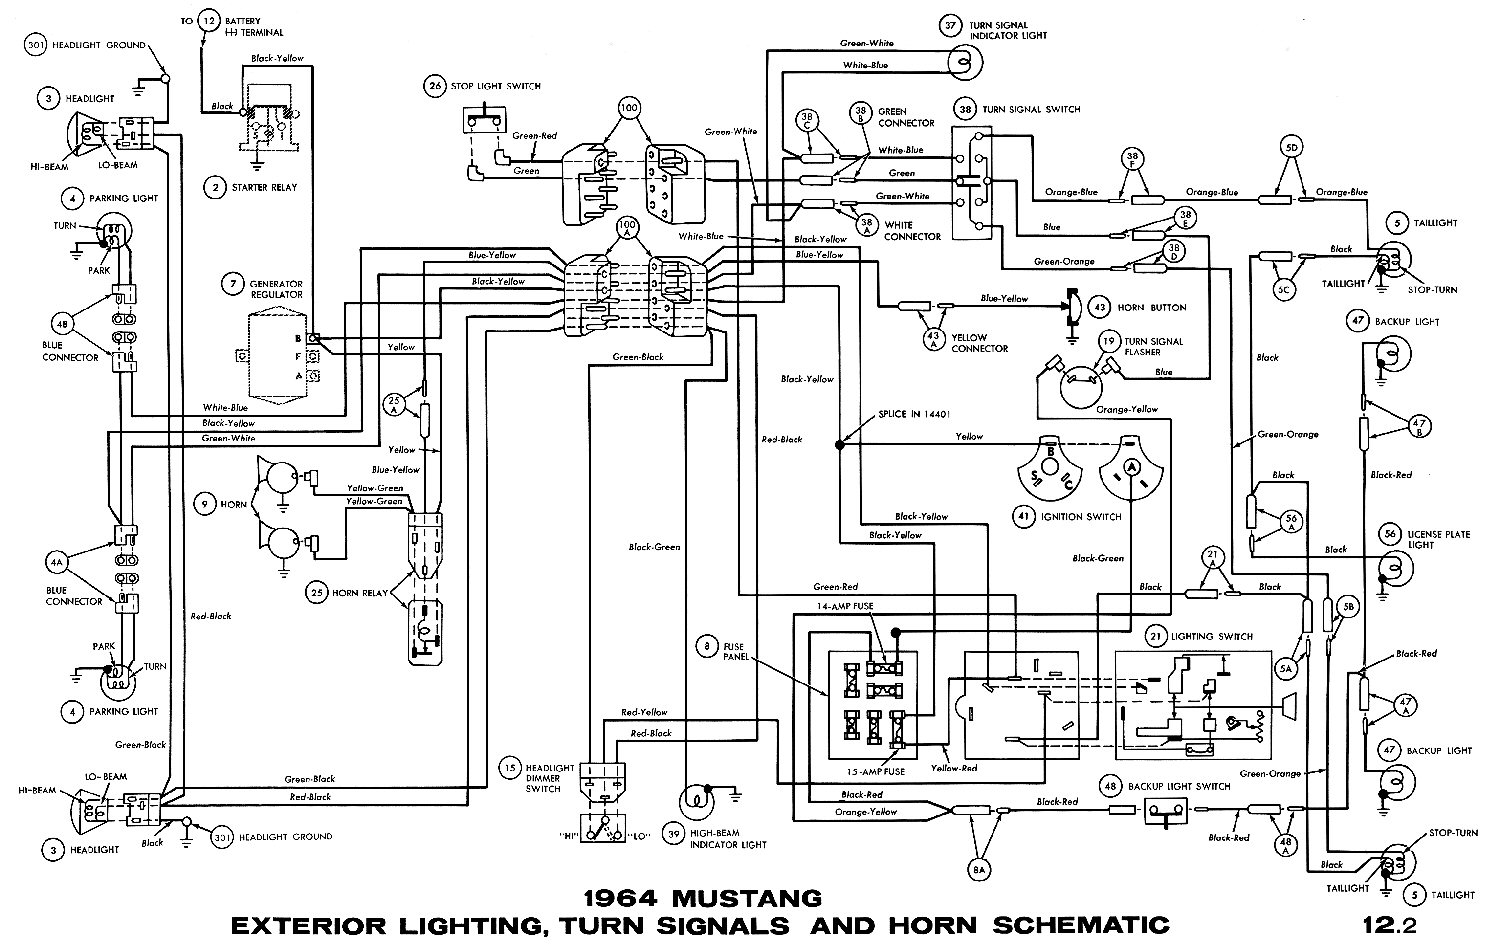 1964 Mustang Wiring Diagrams Average Joe Restoration Dodge Horn Relay Headlamps